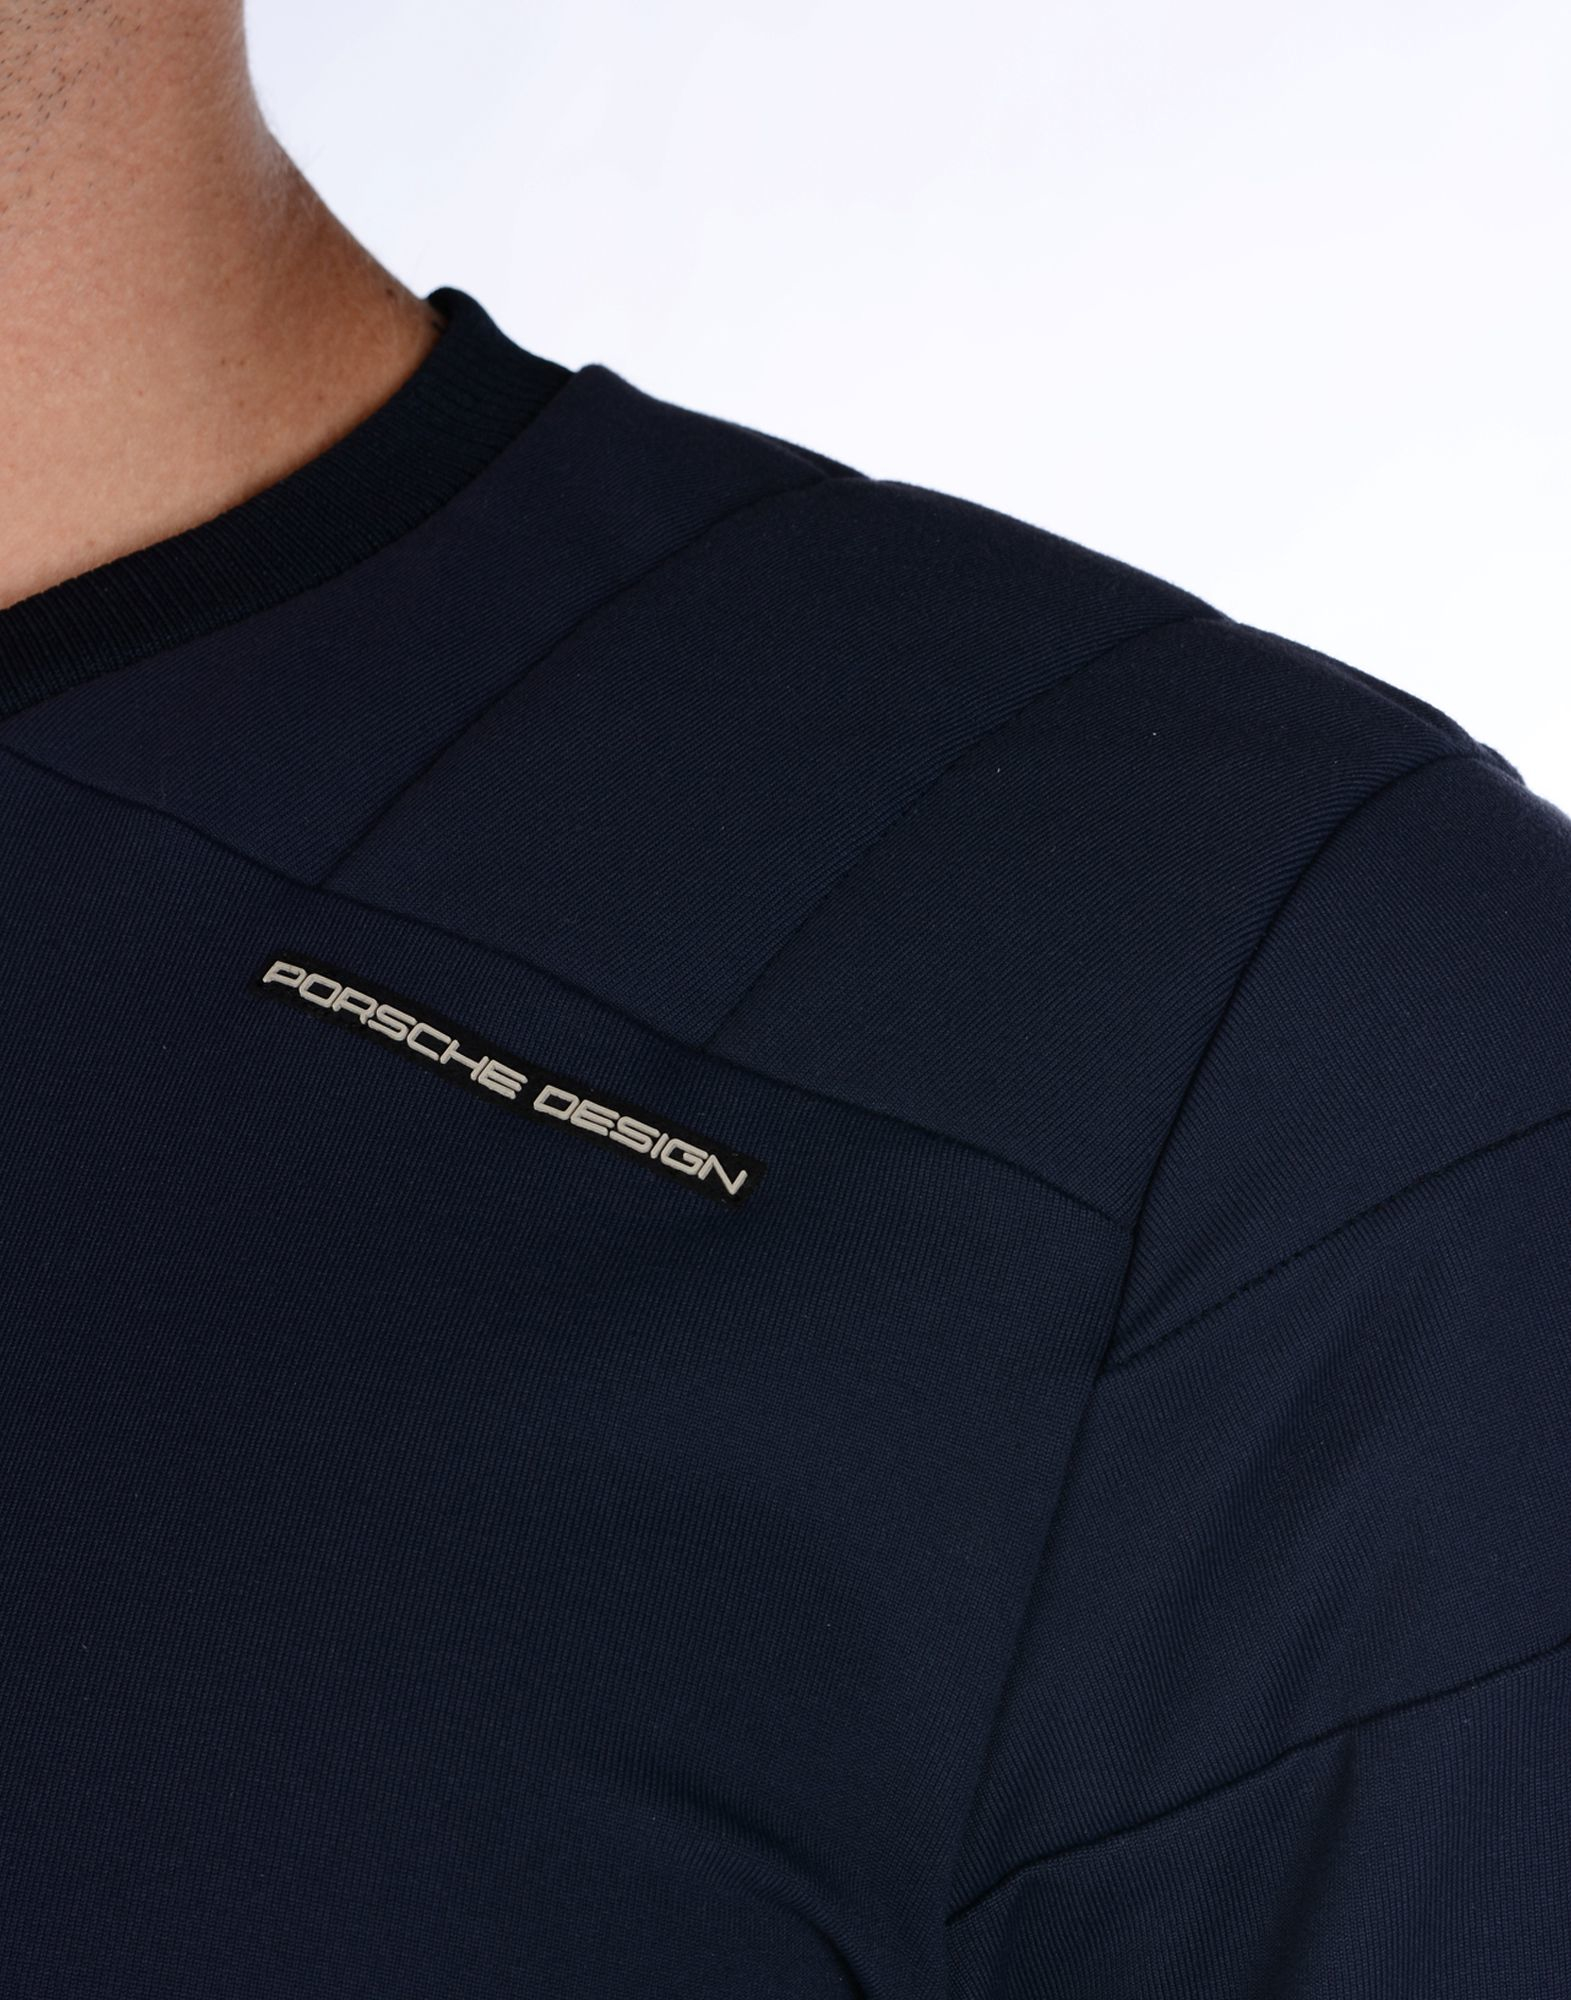 Porsche Design Sweatshirt In Blue For Men Lyst